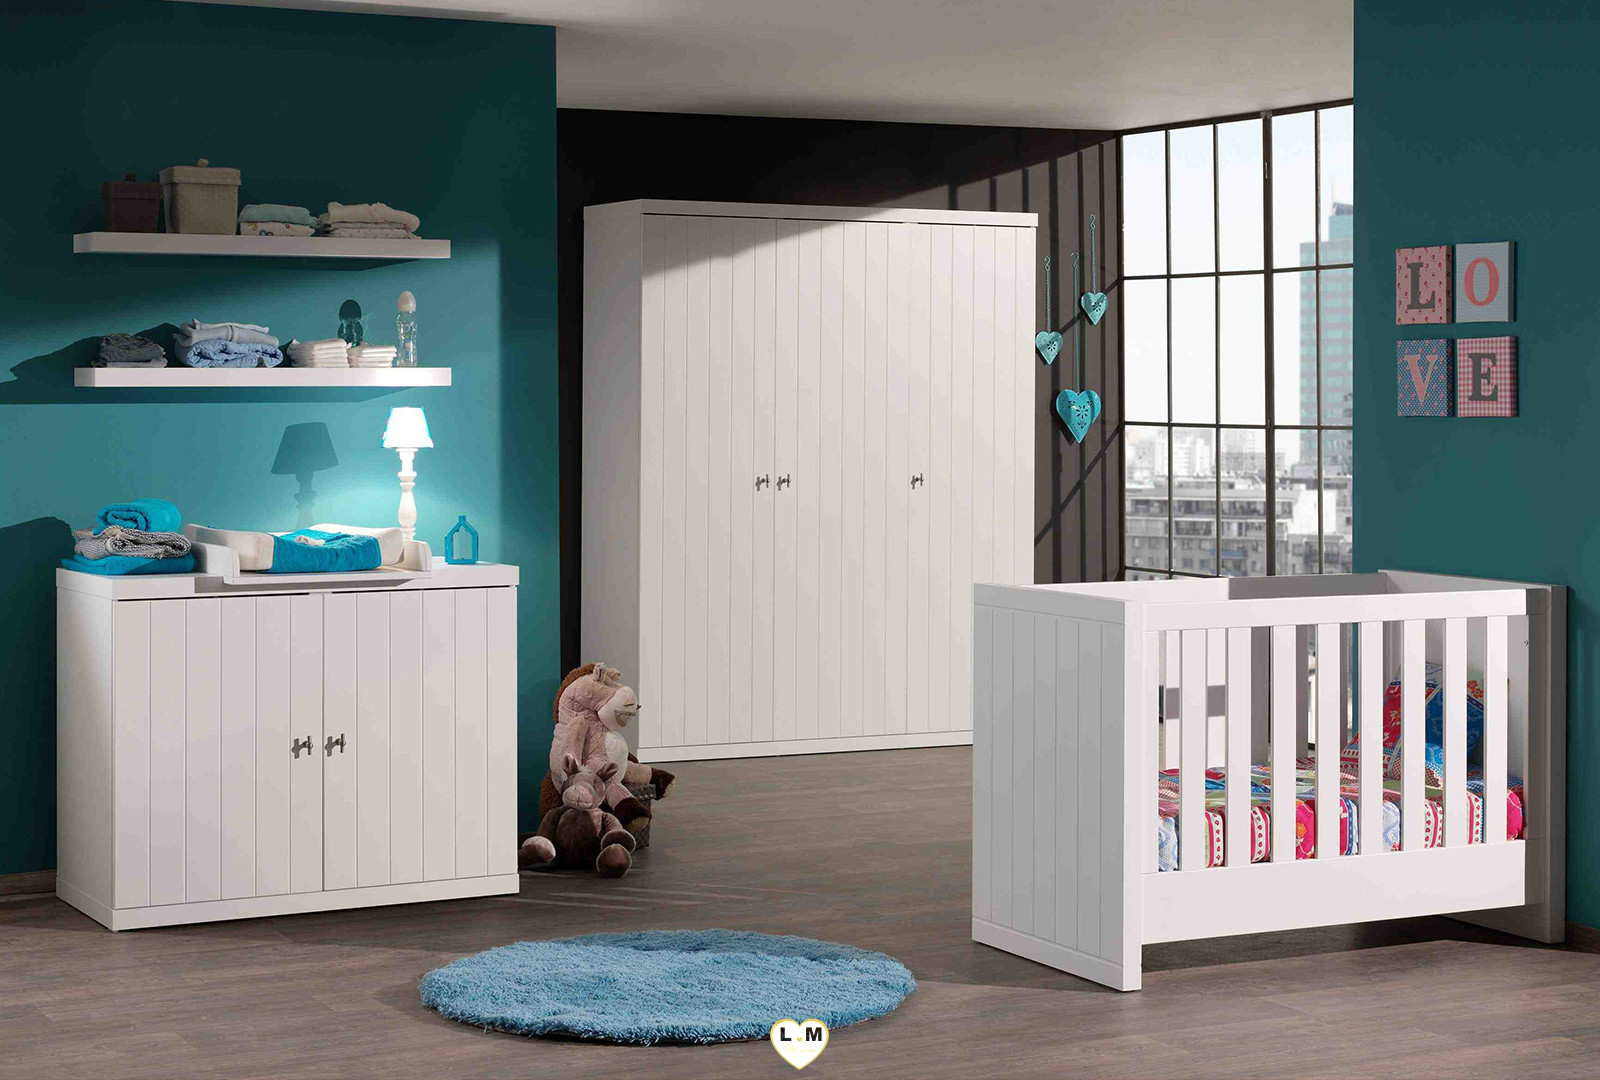 robinson chambre ado l 39 armoire 3 portes lignemeuble com. Black Bedroom Furniture Sets. Home Design Ideas